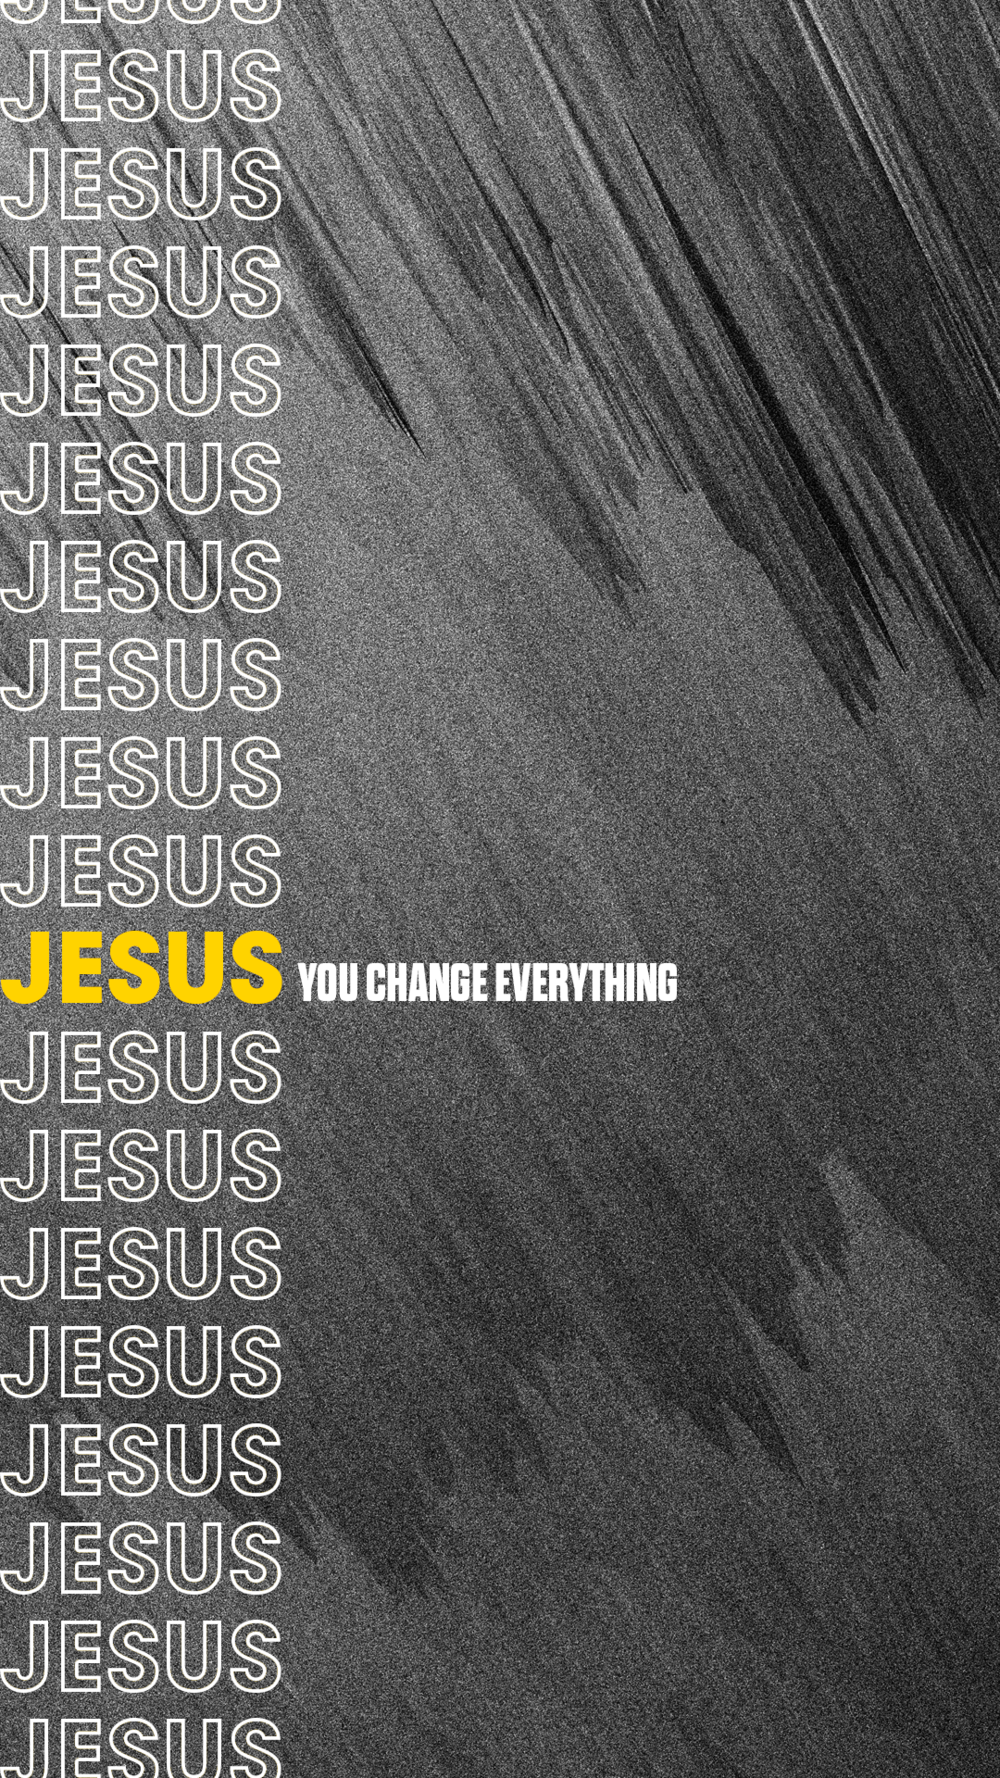 jesus_youchangeeverything.png